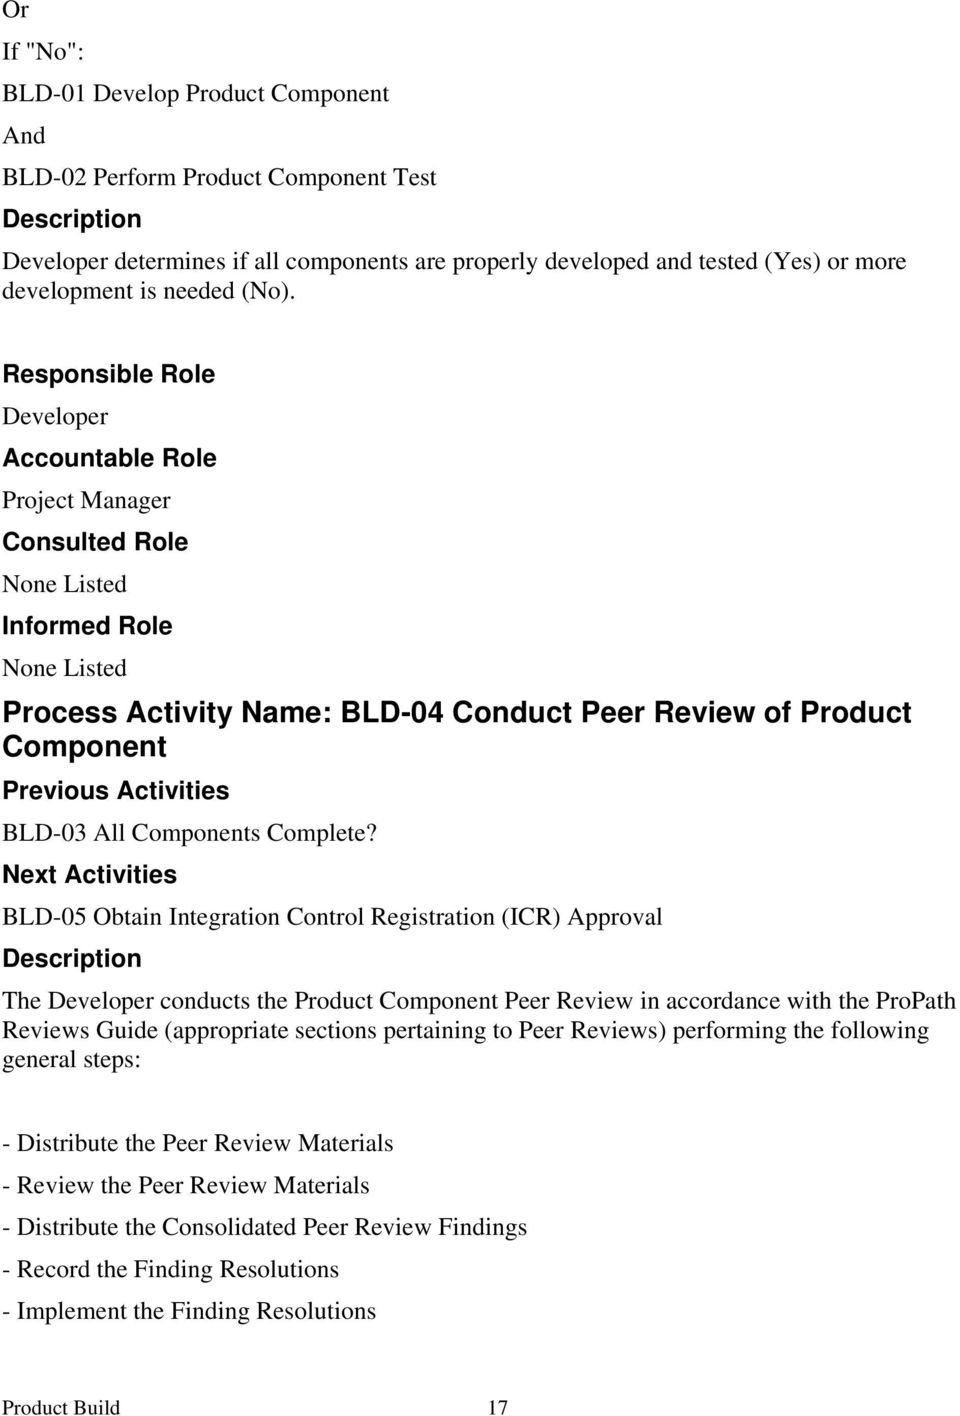 Next Activities BLD-05 Obtain Integration Control Registration (ICR) Approval The Developer conducts the Product Component Peer Review in accordance with the ProPath Reviews Guide (appropriate